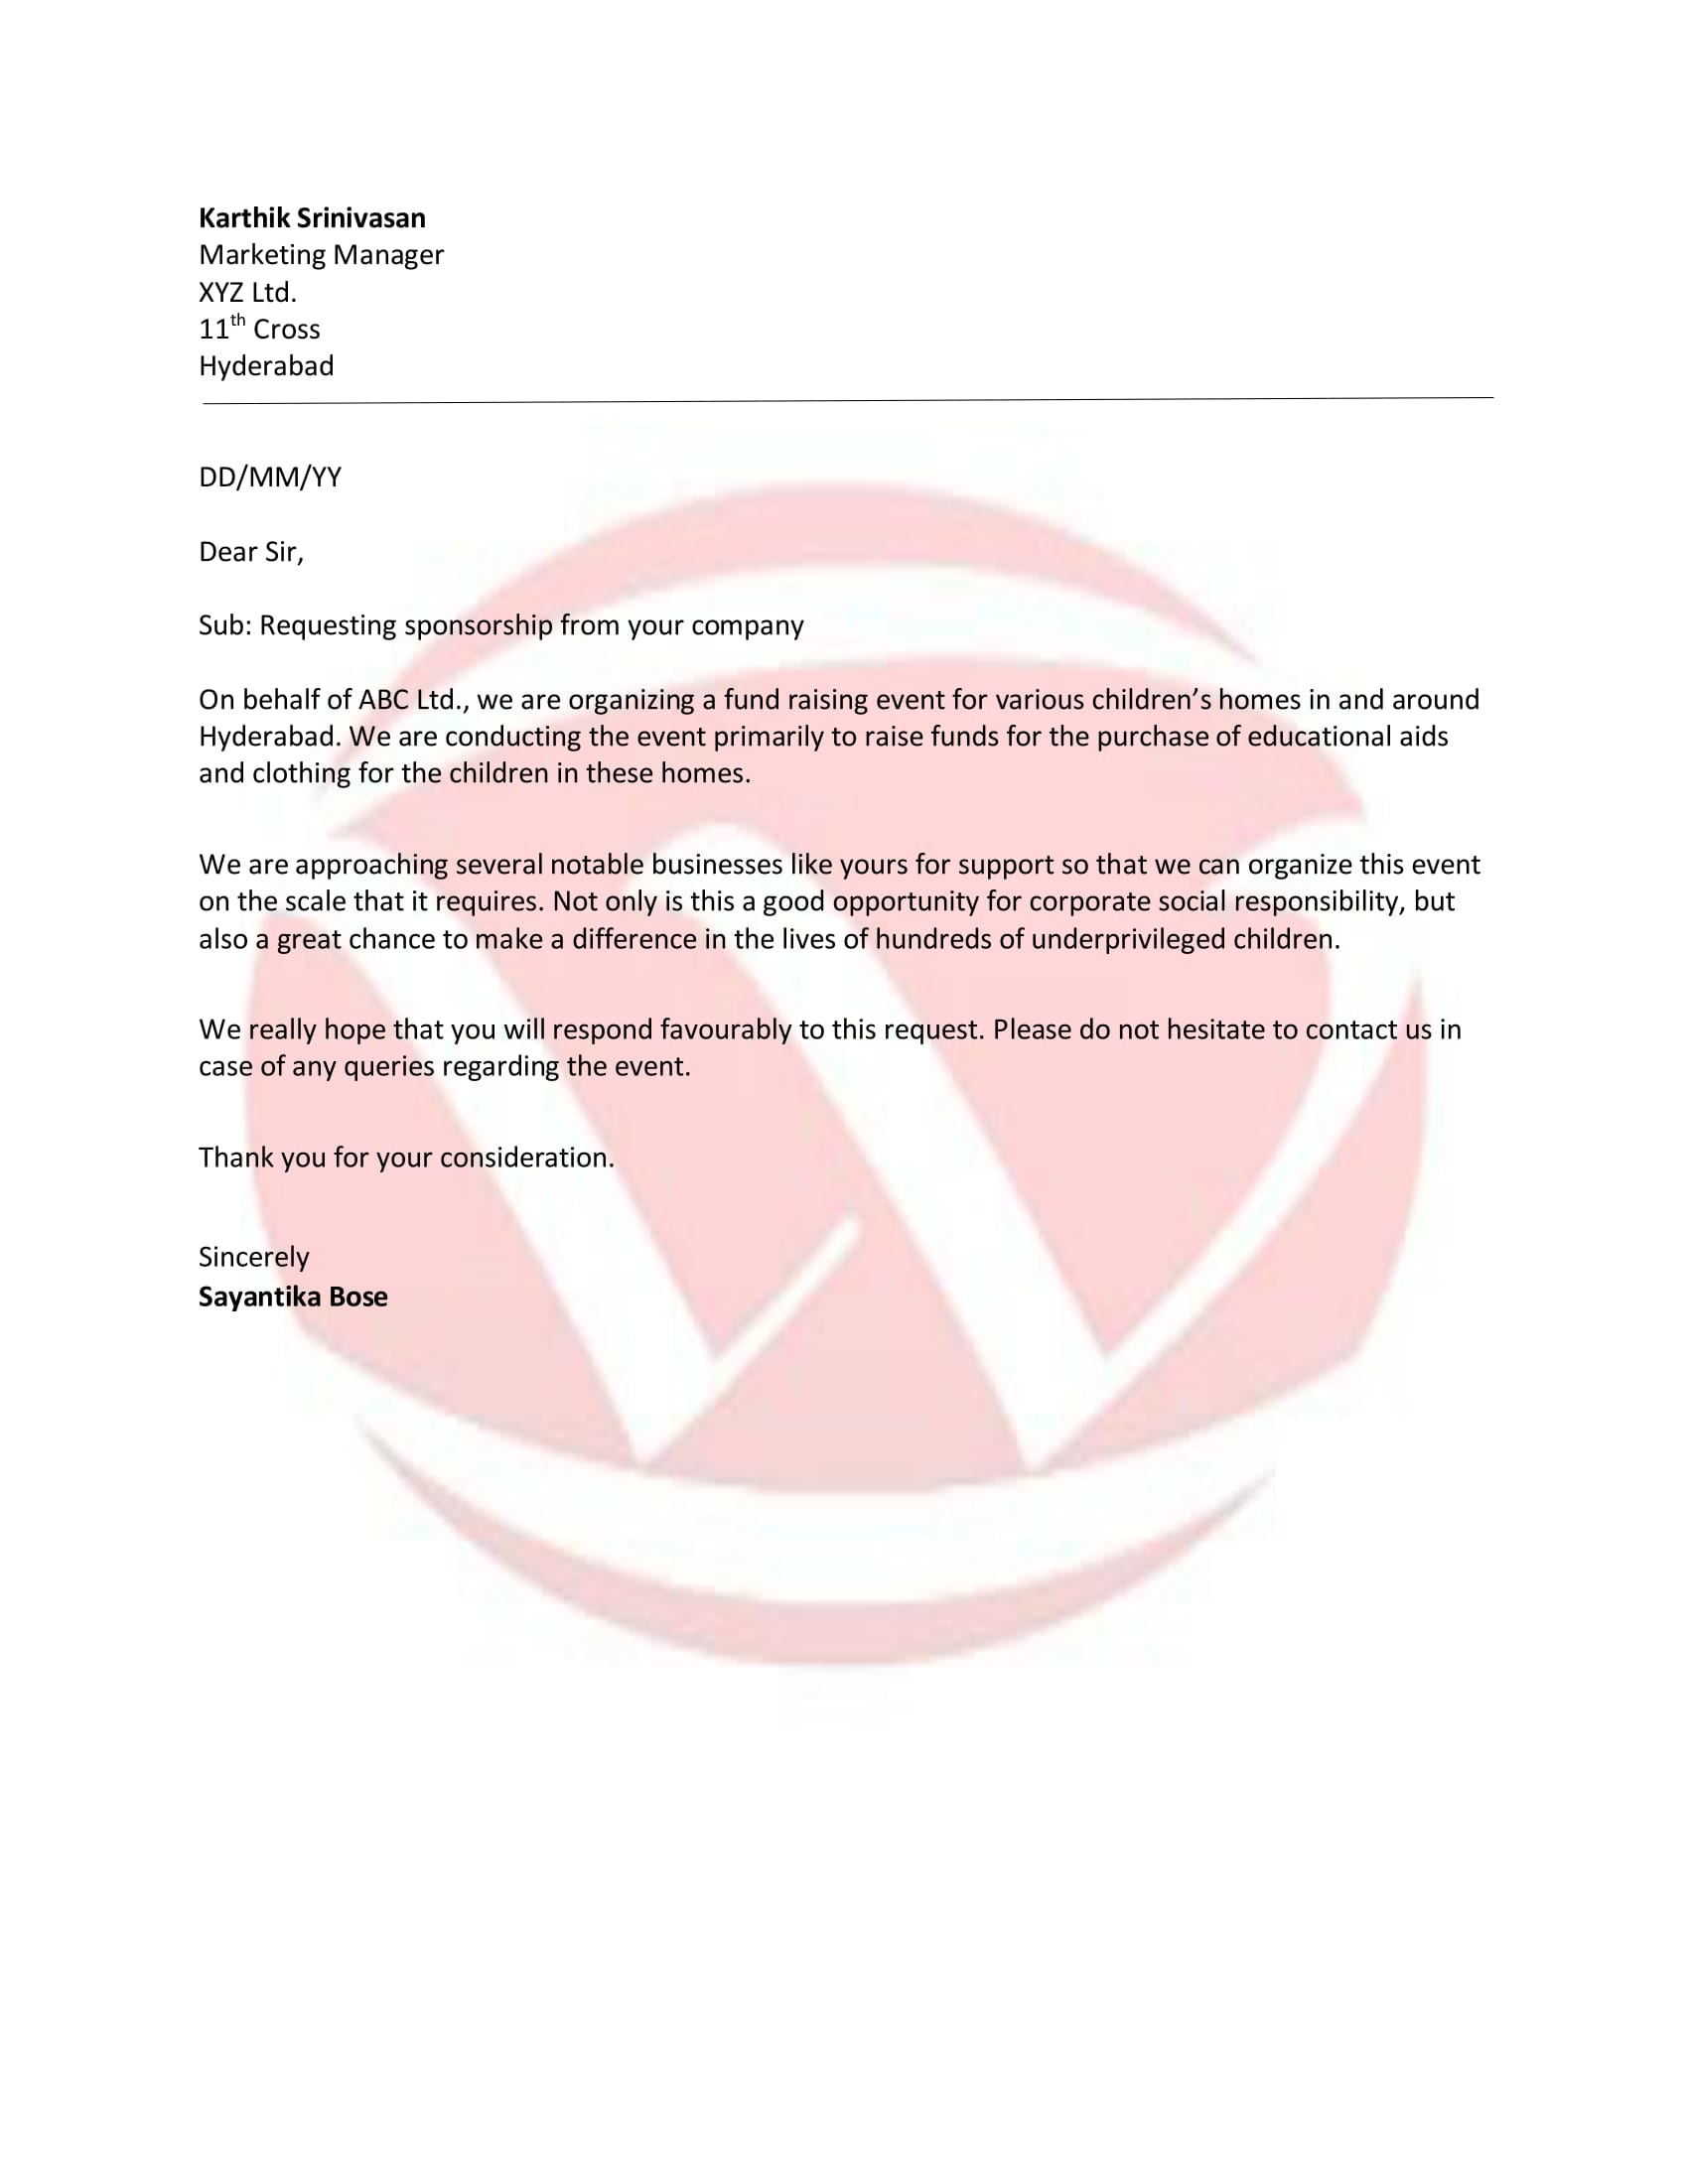 Sponsorship Sample Letter